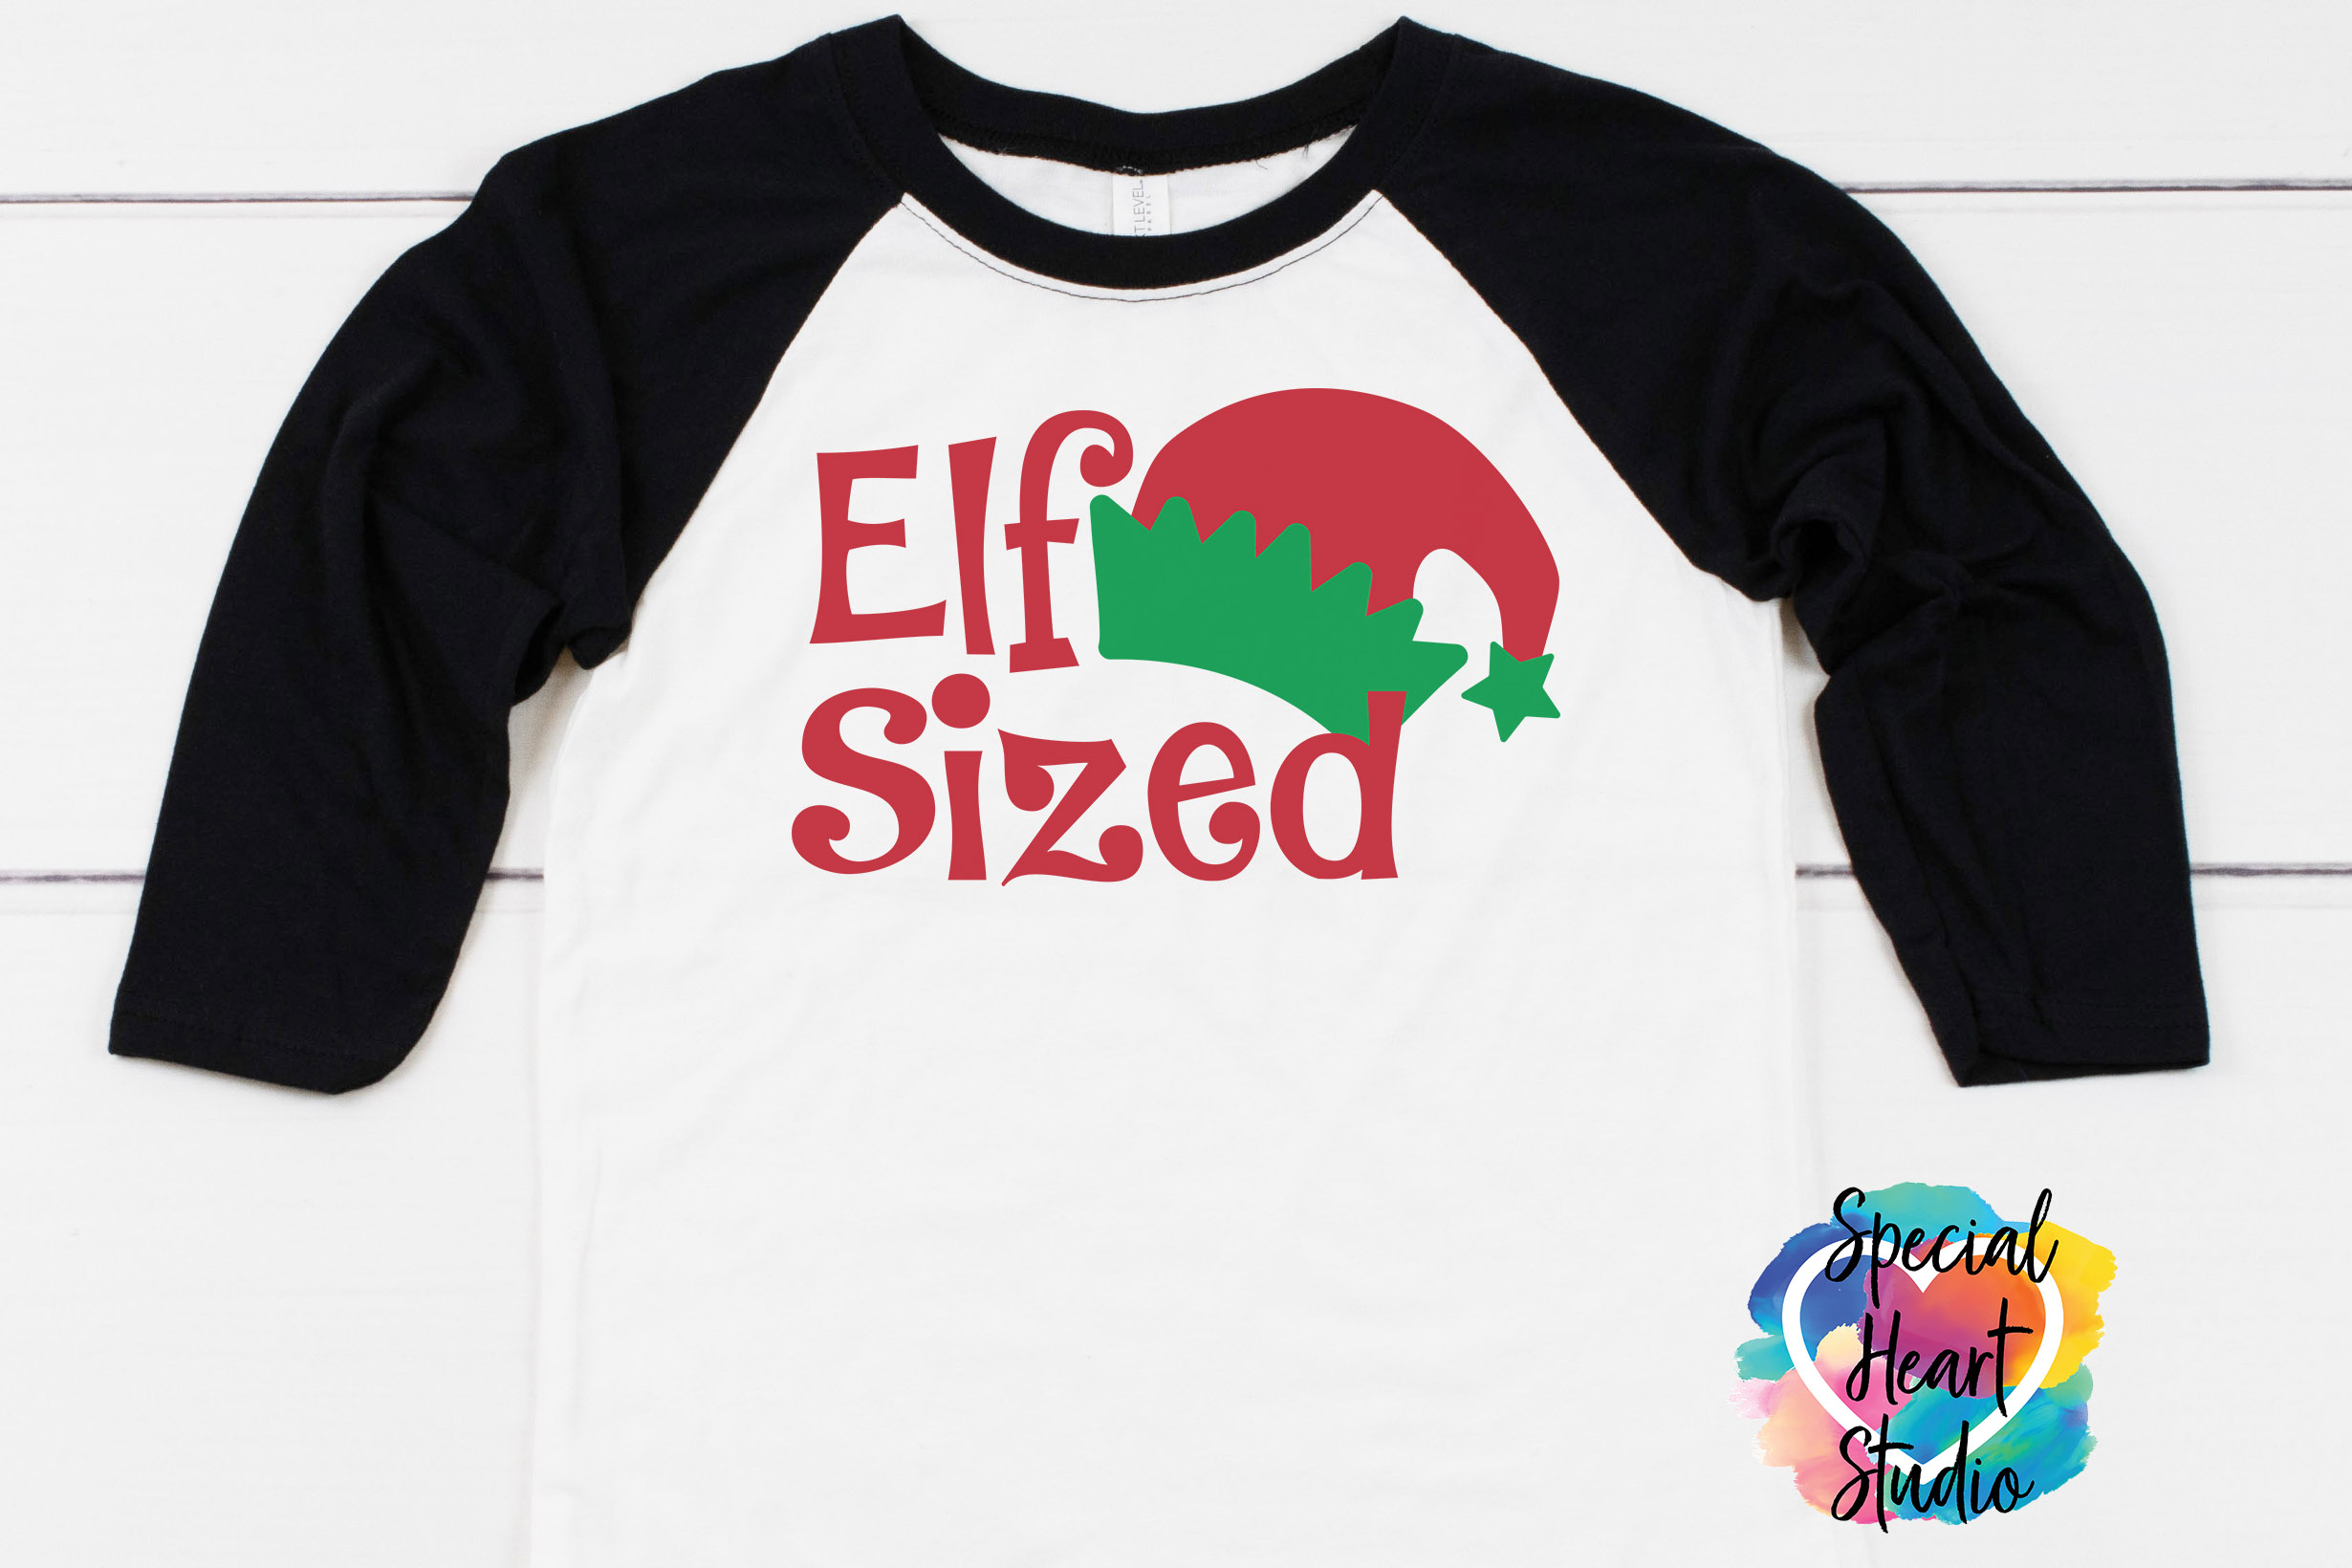 Elf Sized - A Fun Christmas SVG Cut File example image 1